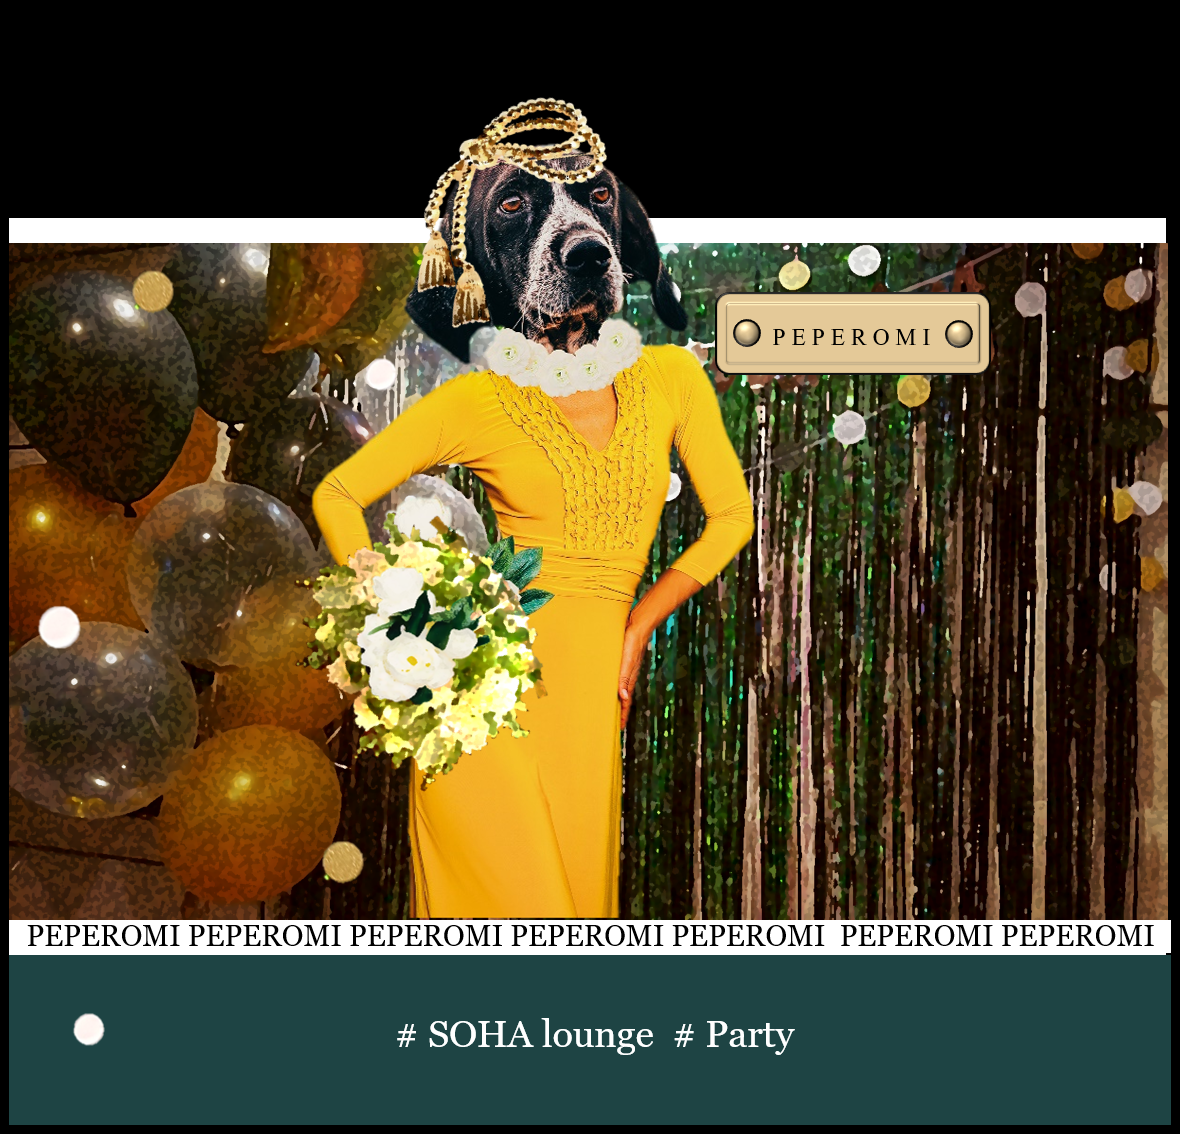 SOHA lounge Party